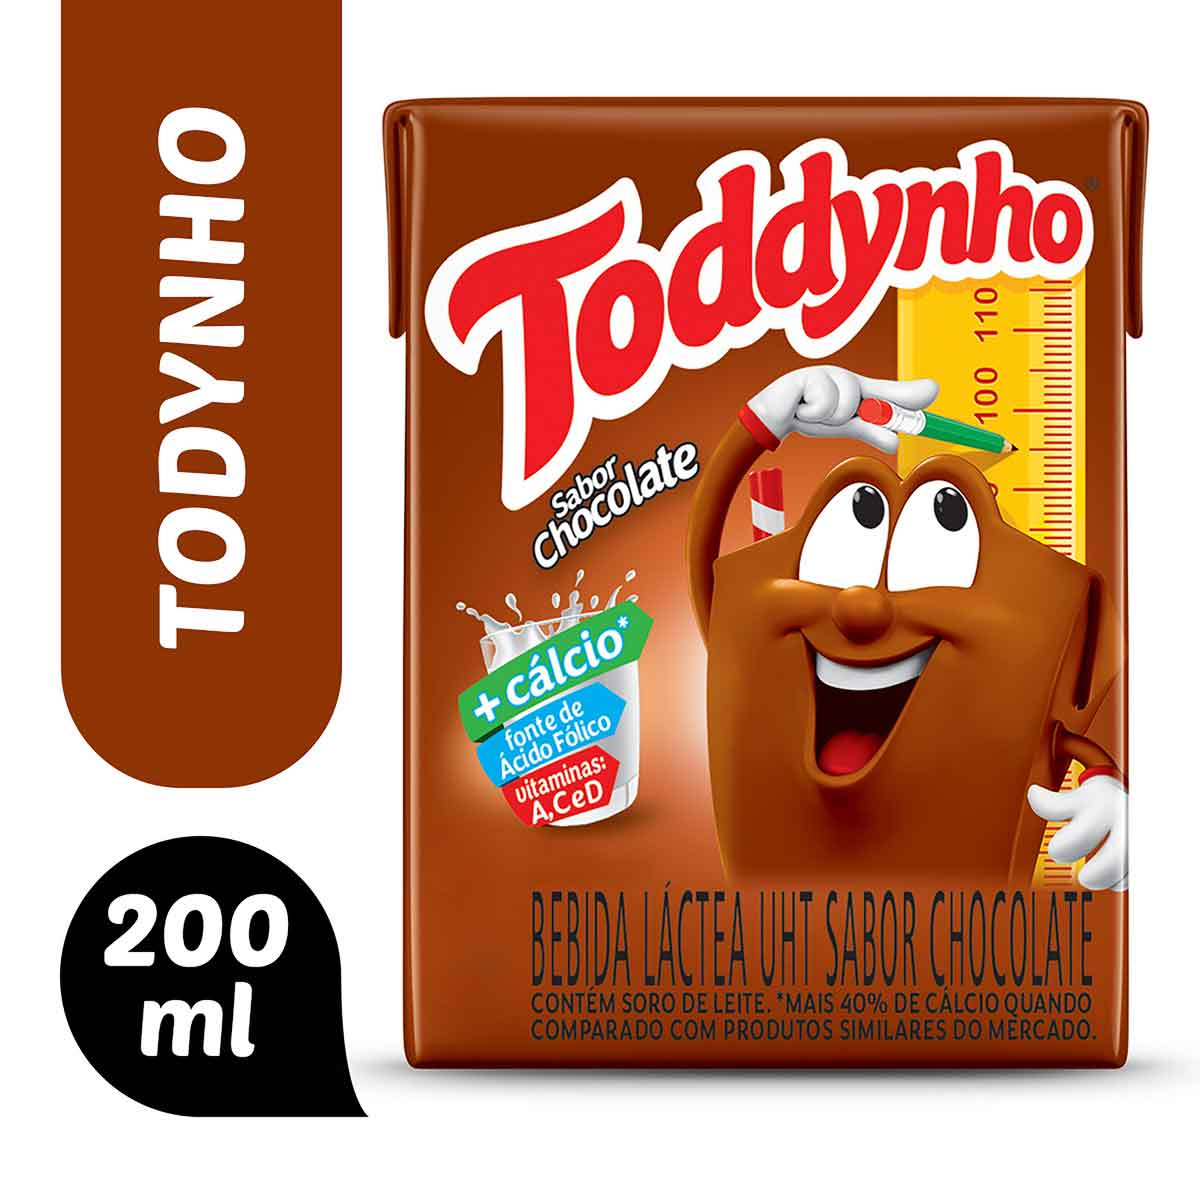 TODDYNHO TRADICIONAL 3X200ML (27)